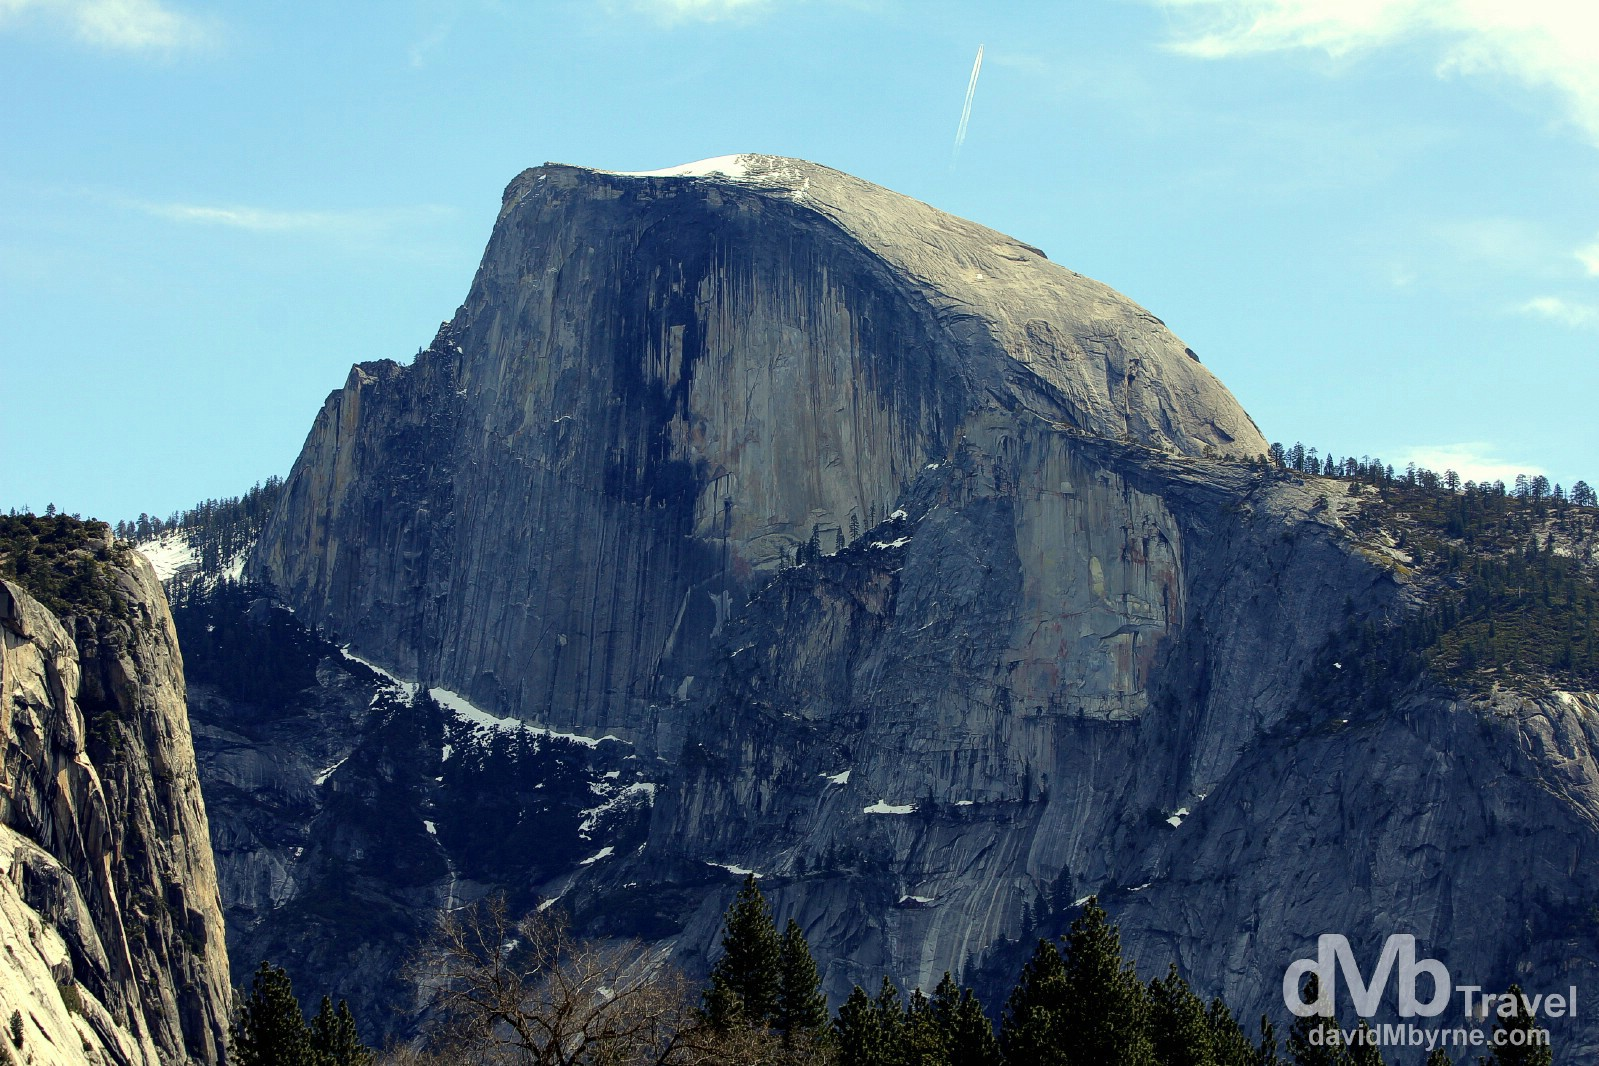 Half Dome, Yosemite National Park, California, USA. April 2nd 2013.